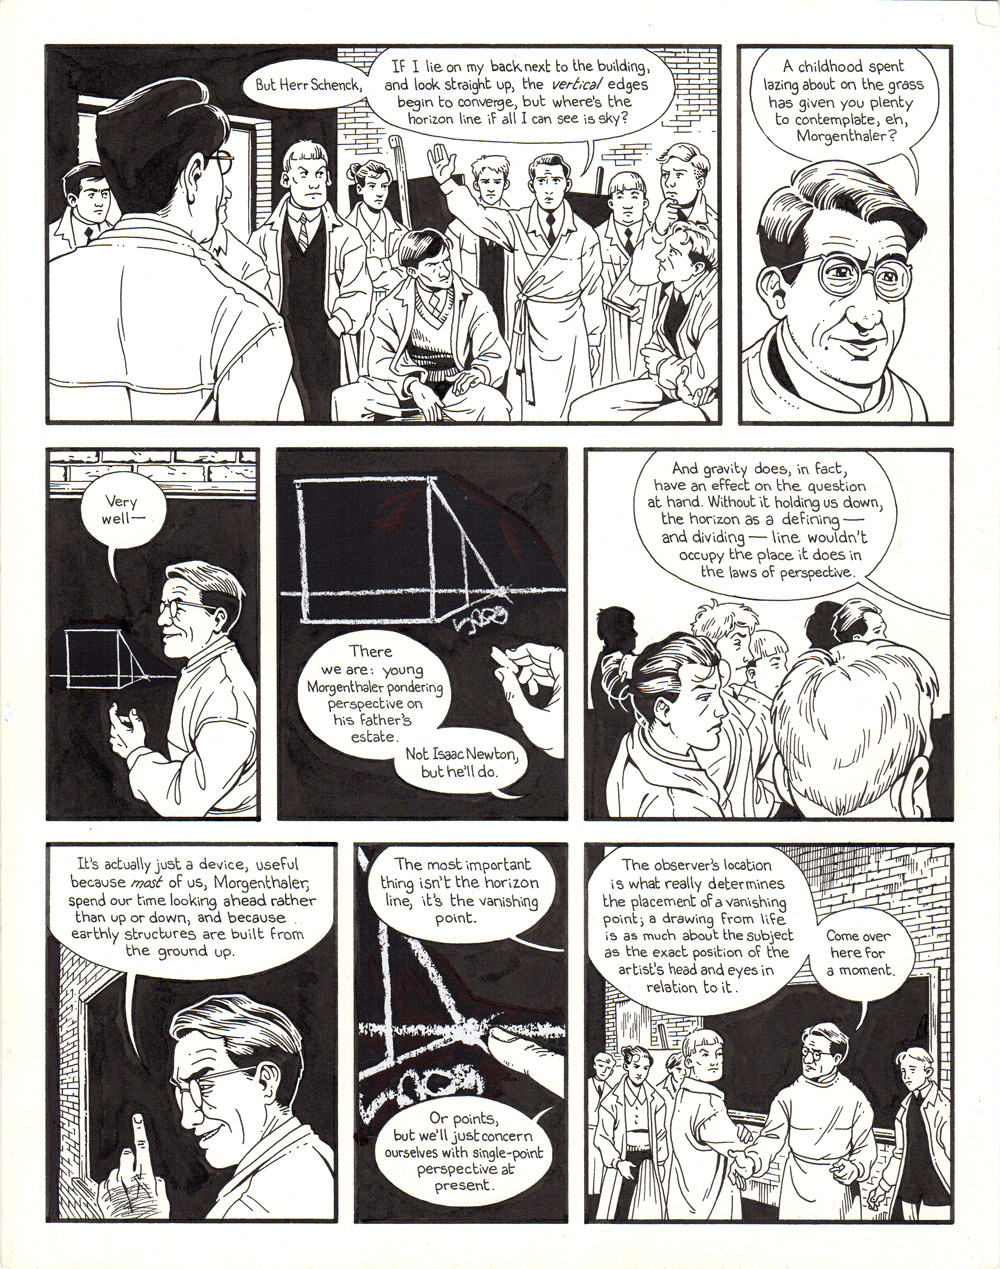 Berlin: Book 1 - Page 102